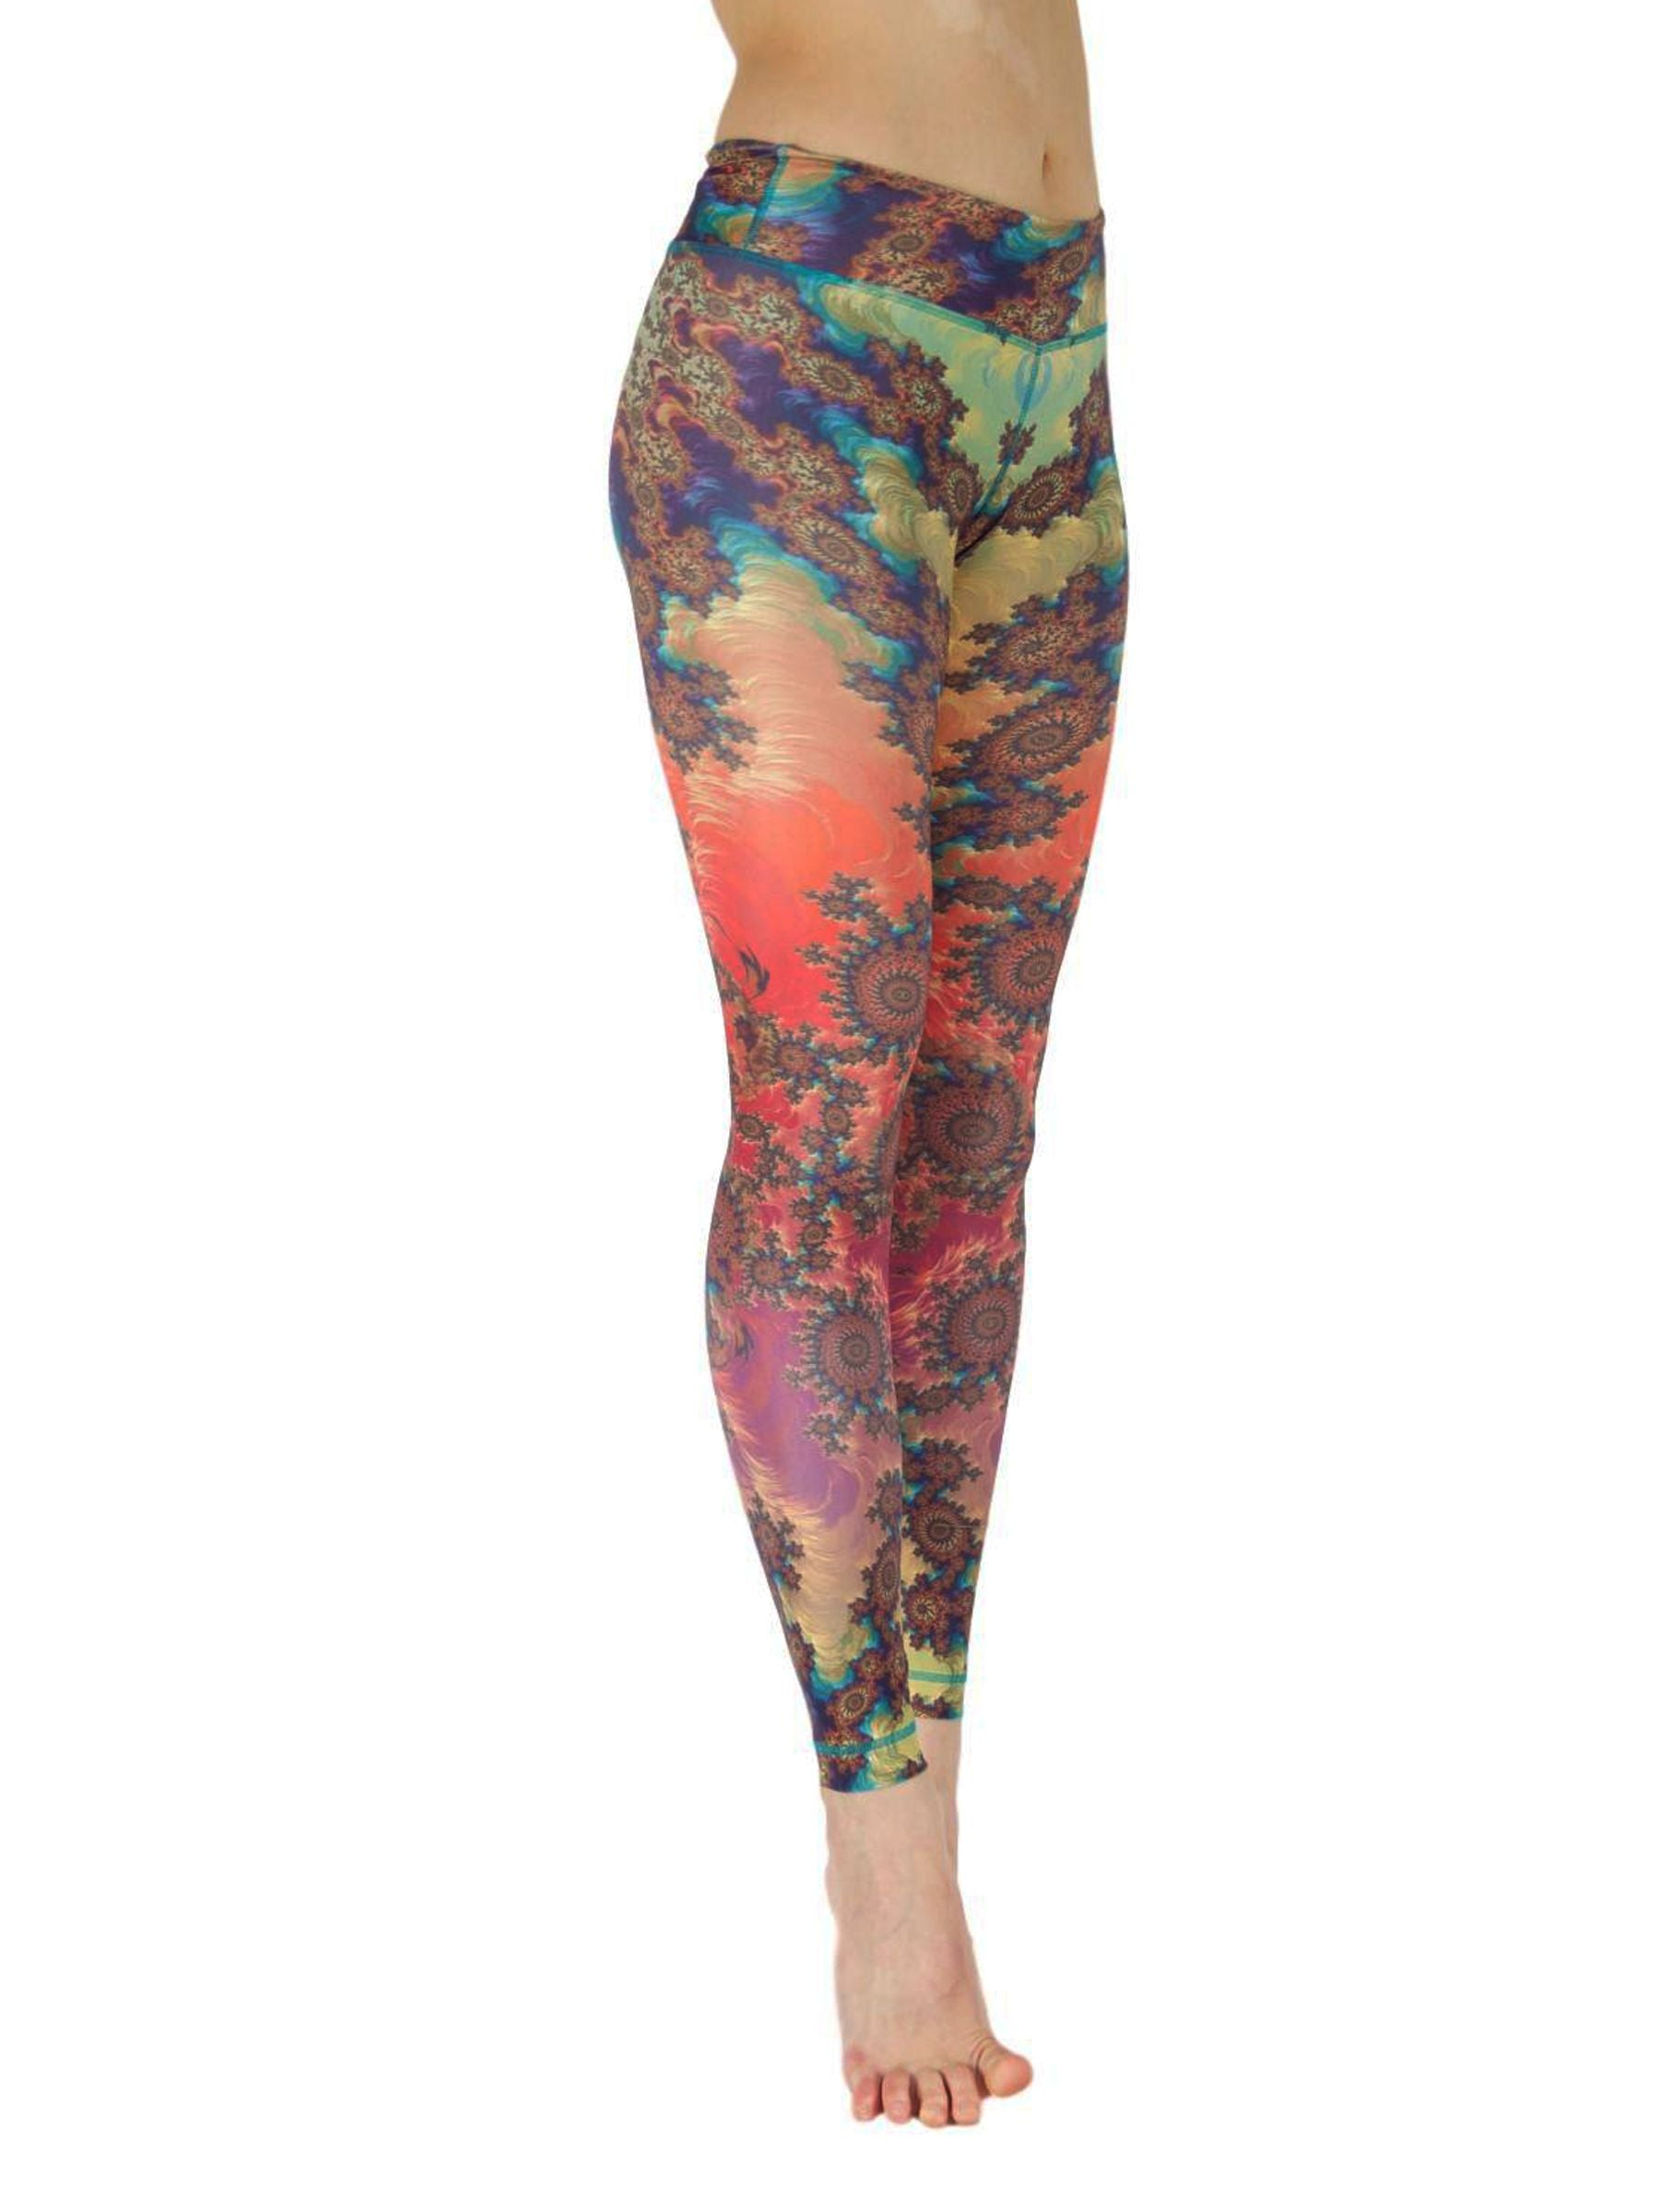 Sunshine by Niyama - High Quality, Yoga Legging for Movement Artists.